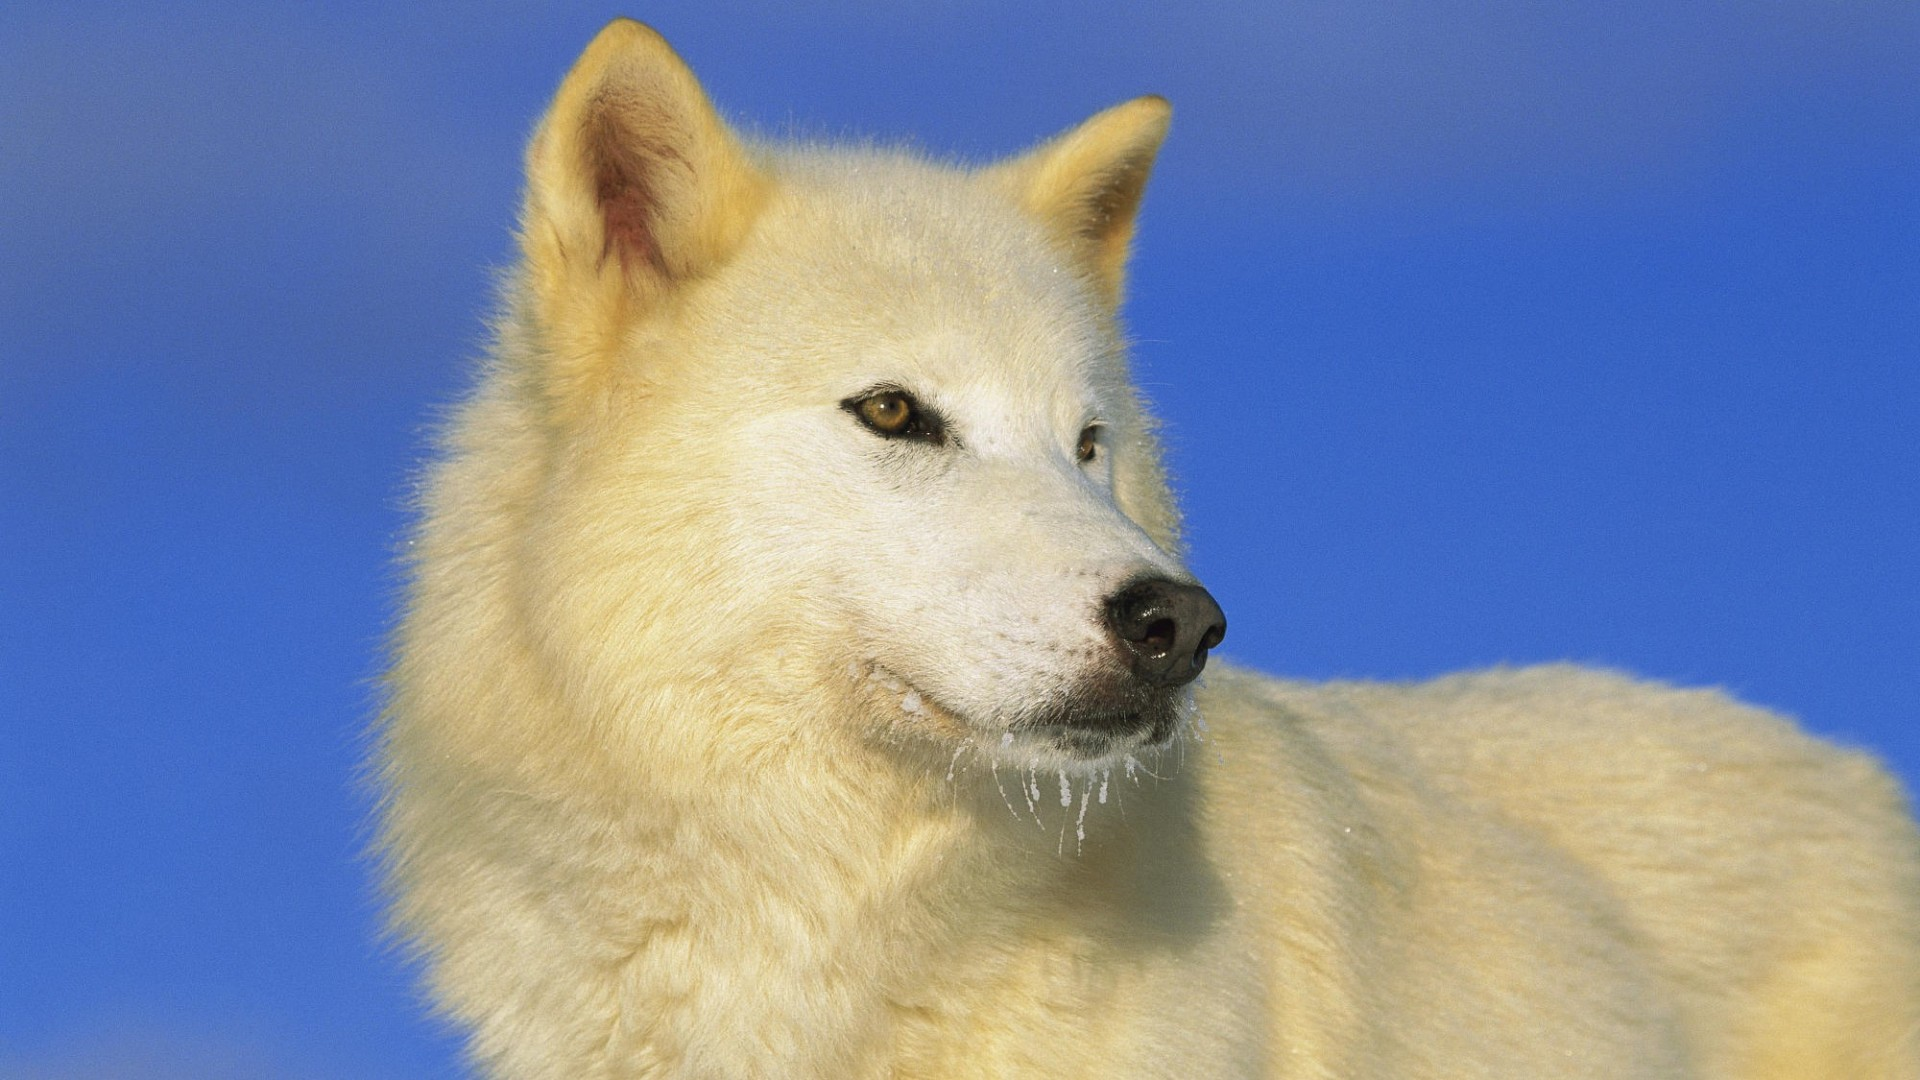 wallpapers-catalogue - animal wallpapers - arctic wolf in